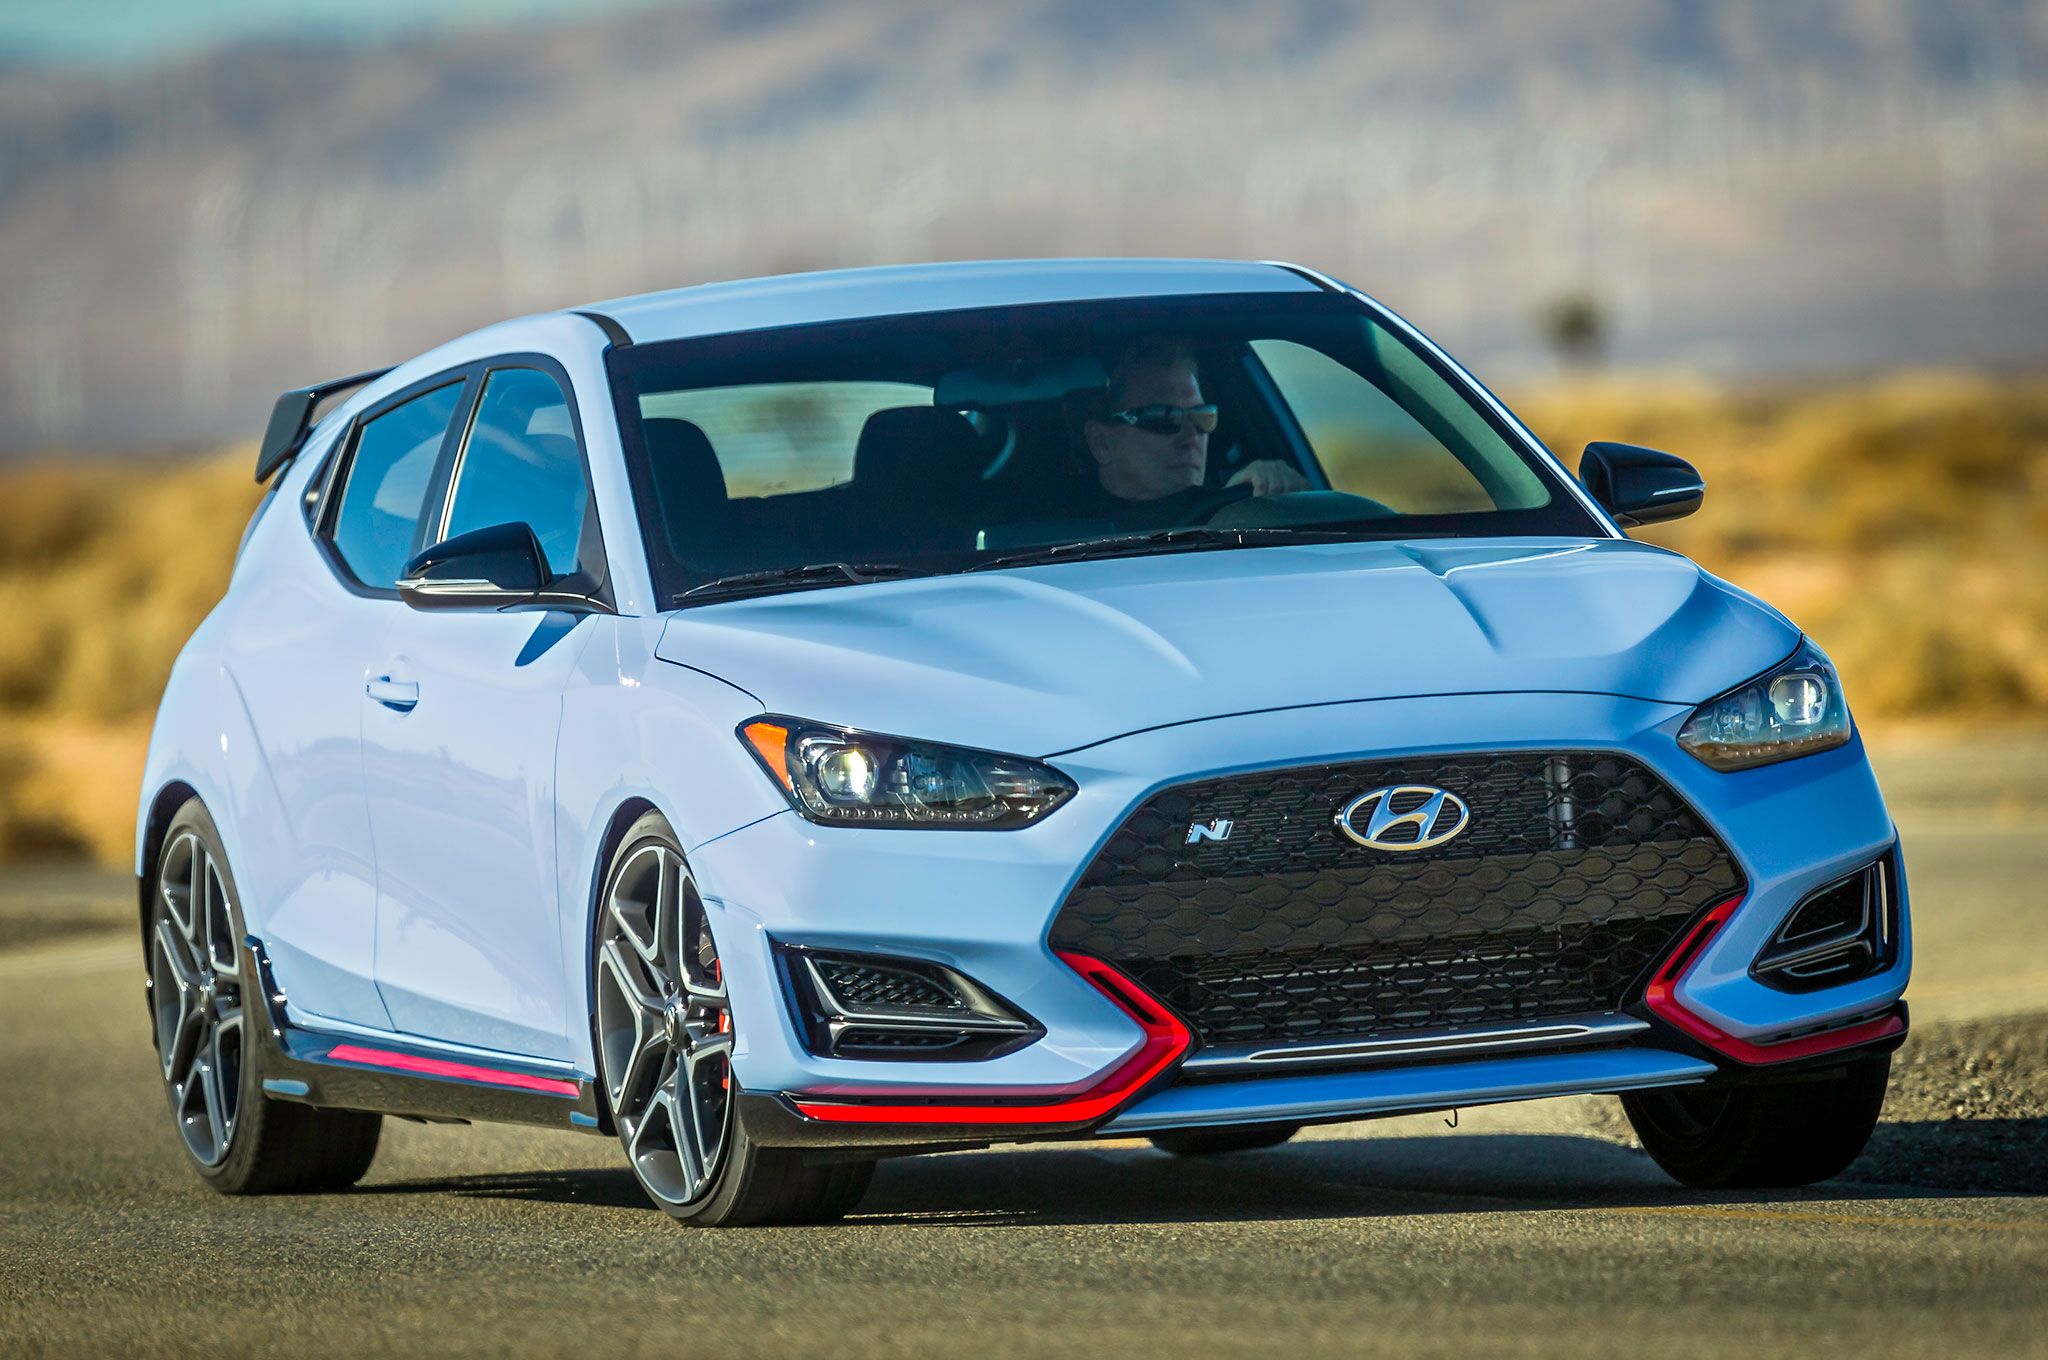 Hyundai Veloster Tires >> 2019 Hyundai Veloster N is the Brand's First Hot Hatch Bound for the U.S. | Automobile Magazine